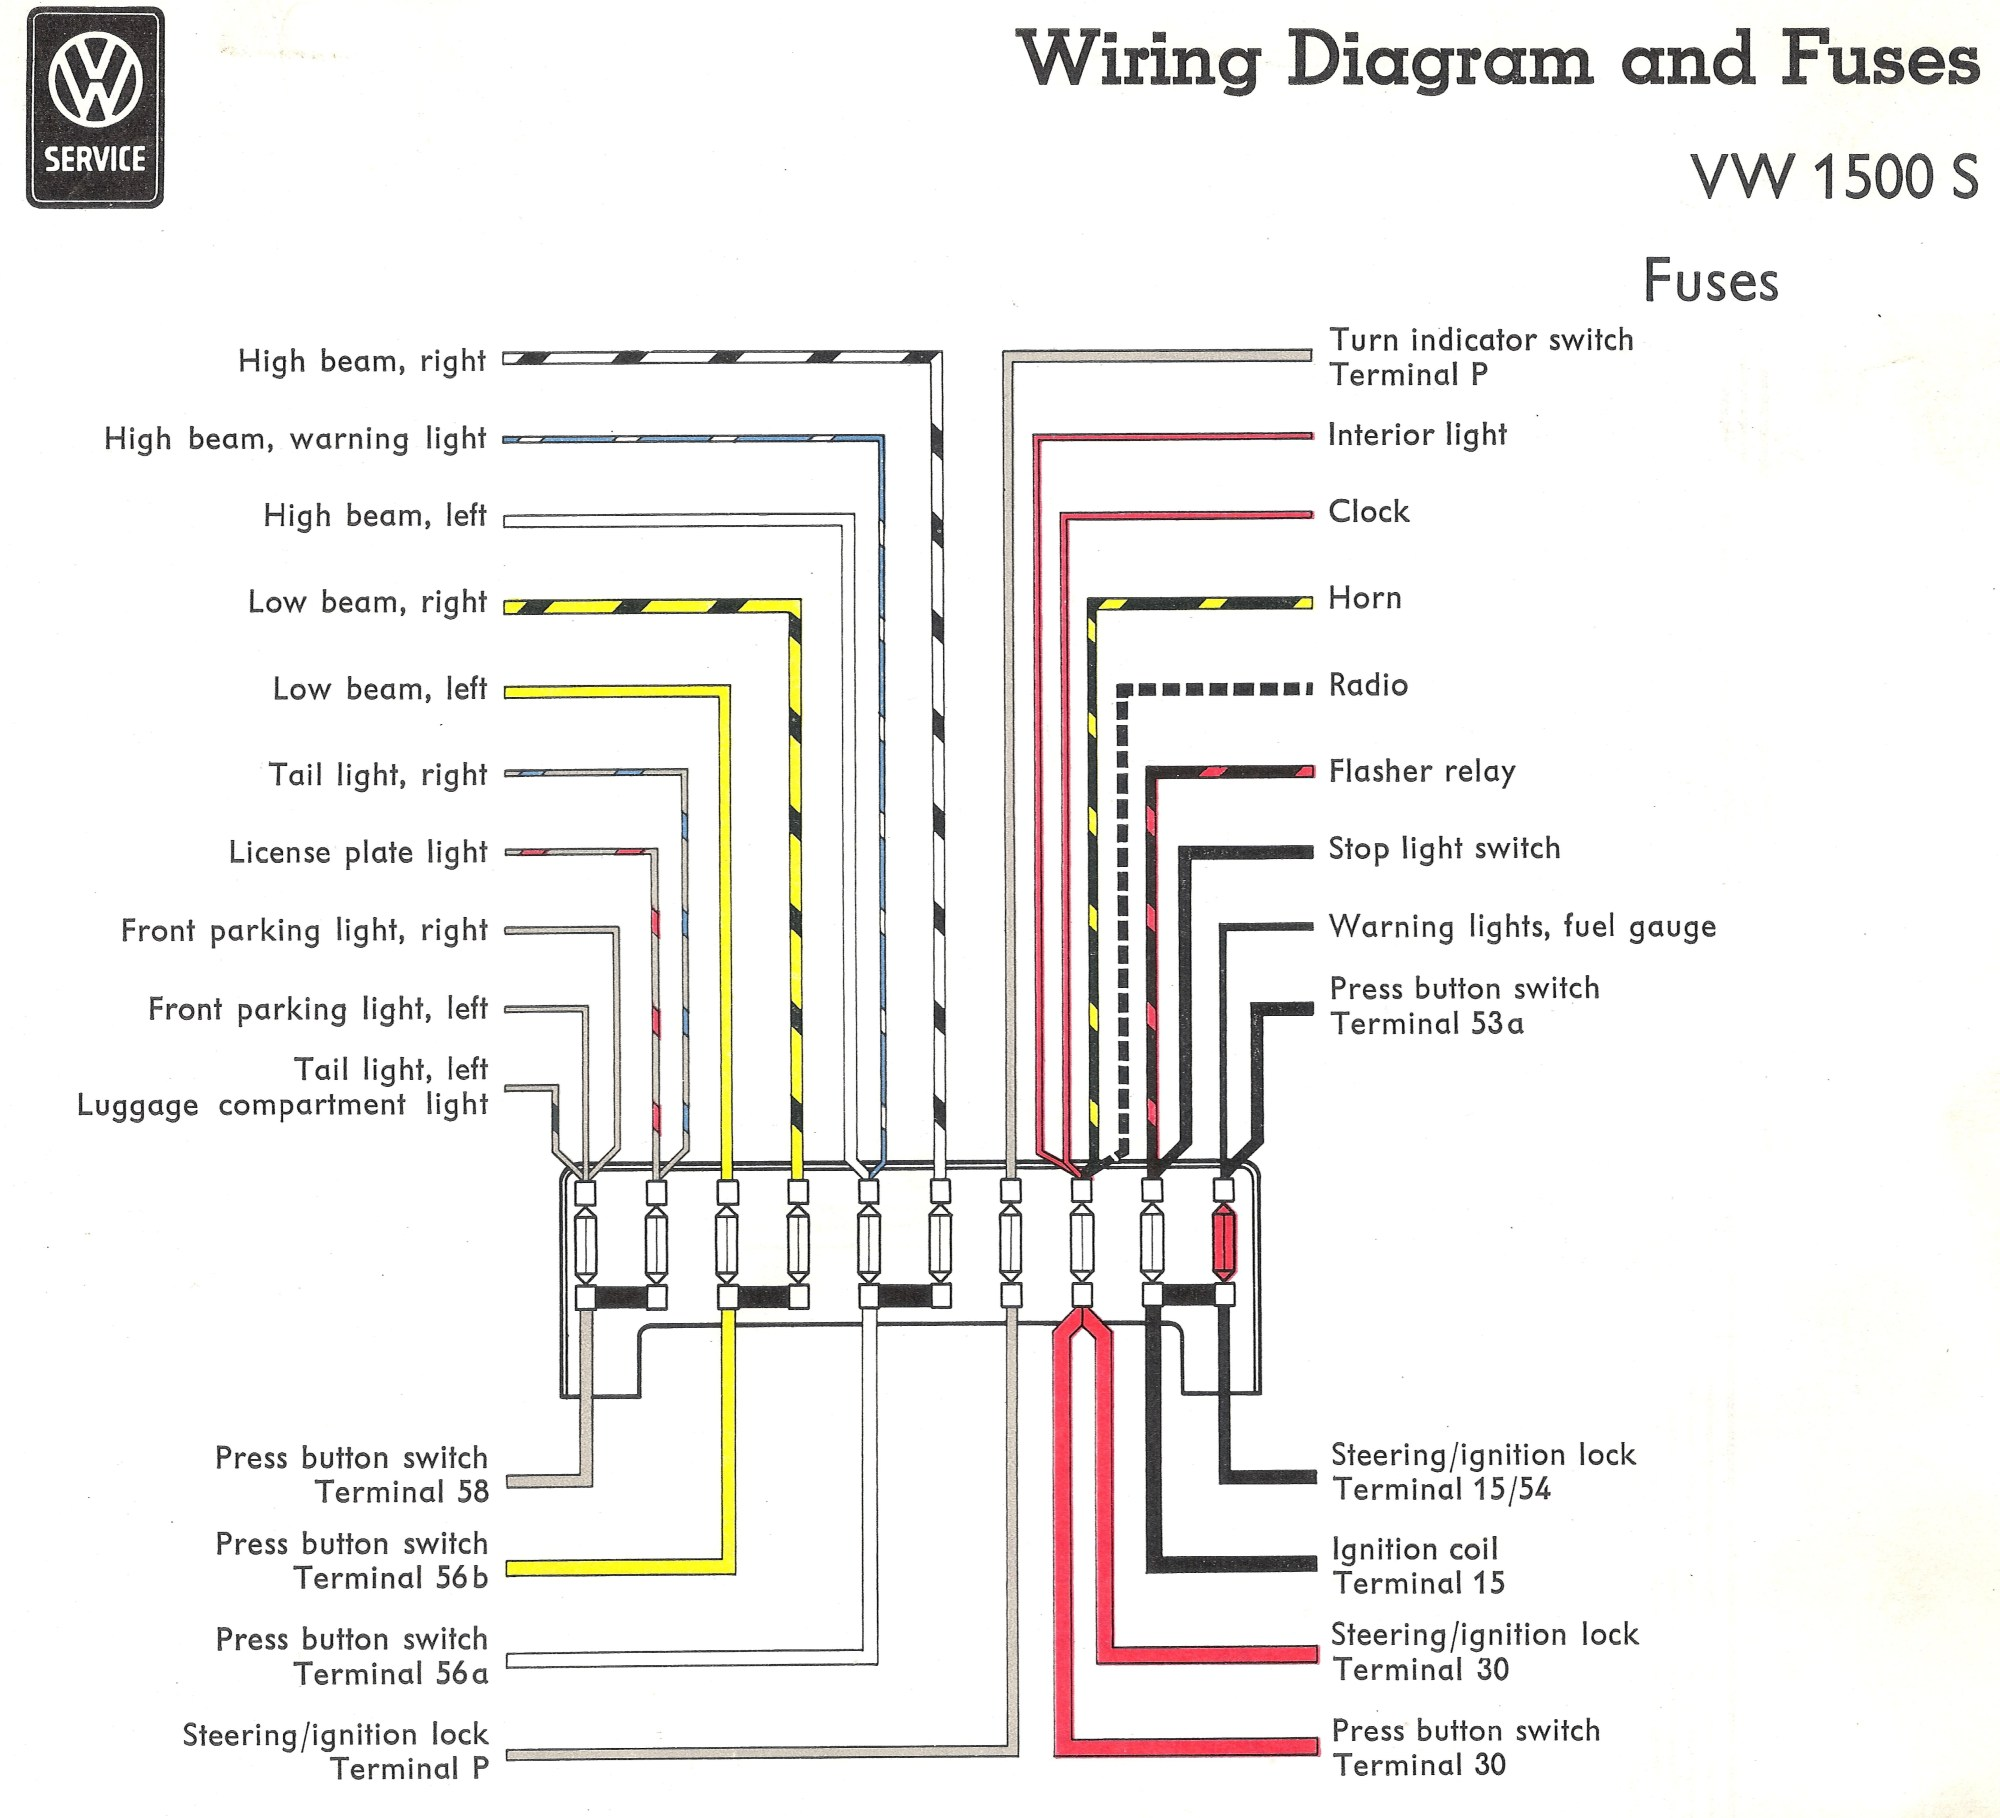 hight resolution of 1972 vw beetle fuse box diagram wiring diagram source 2002 volkswagen jetta fuse box diagram 1970